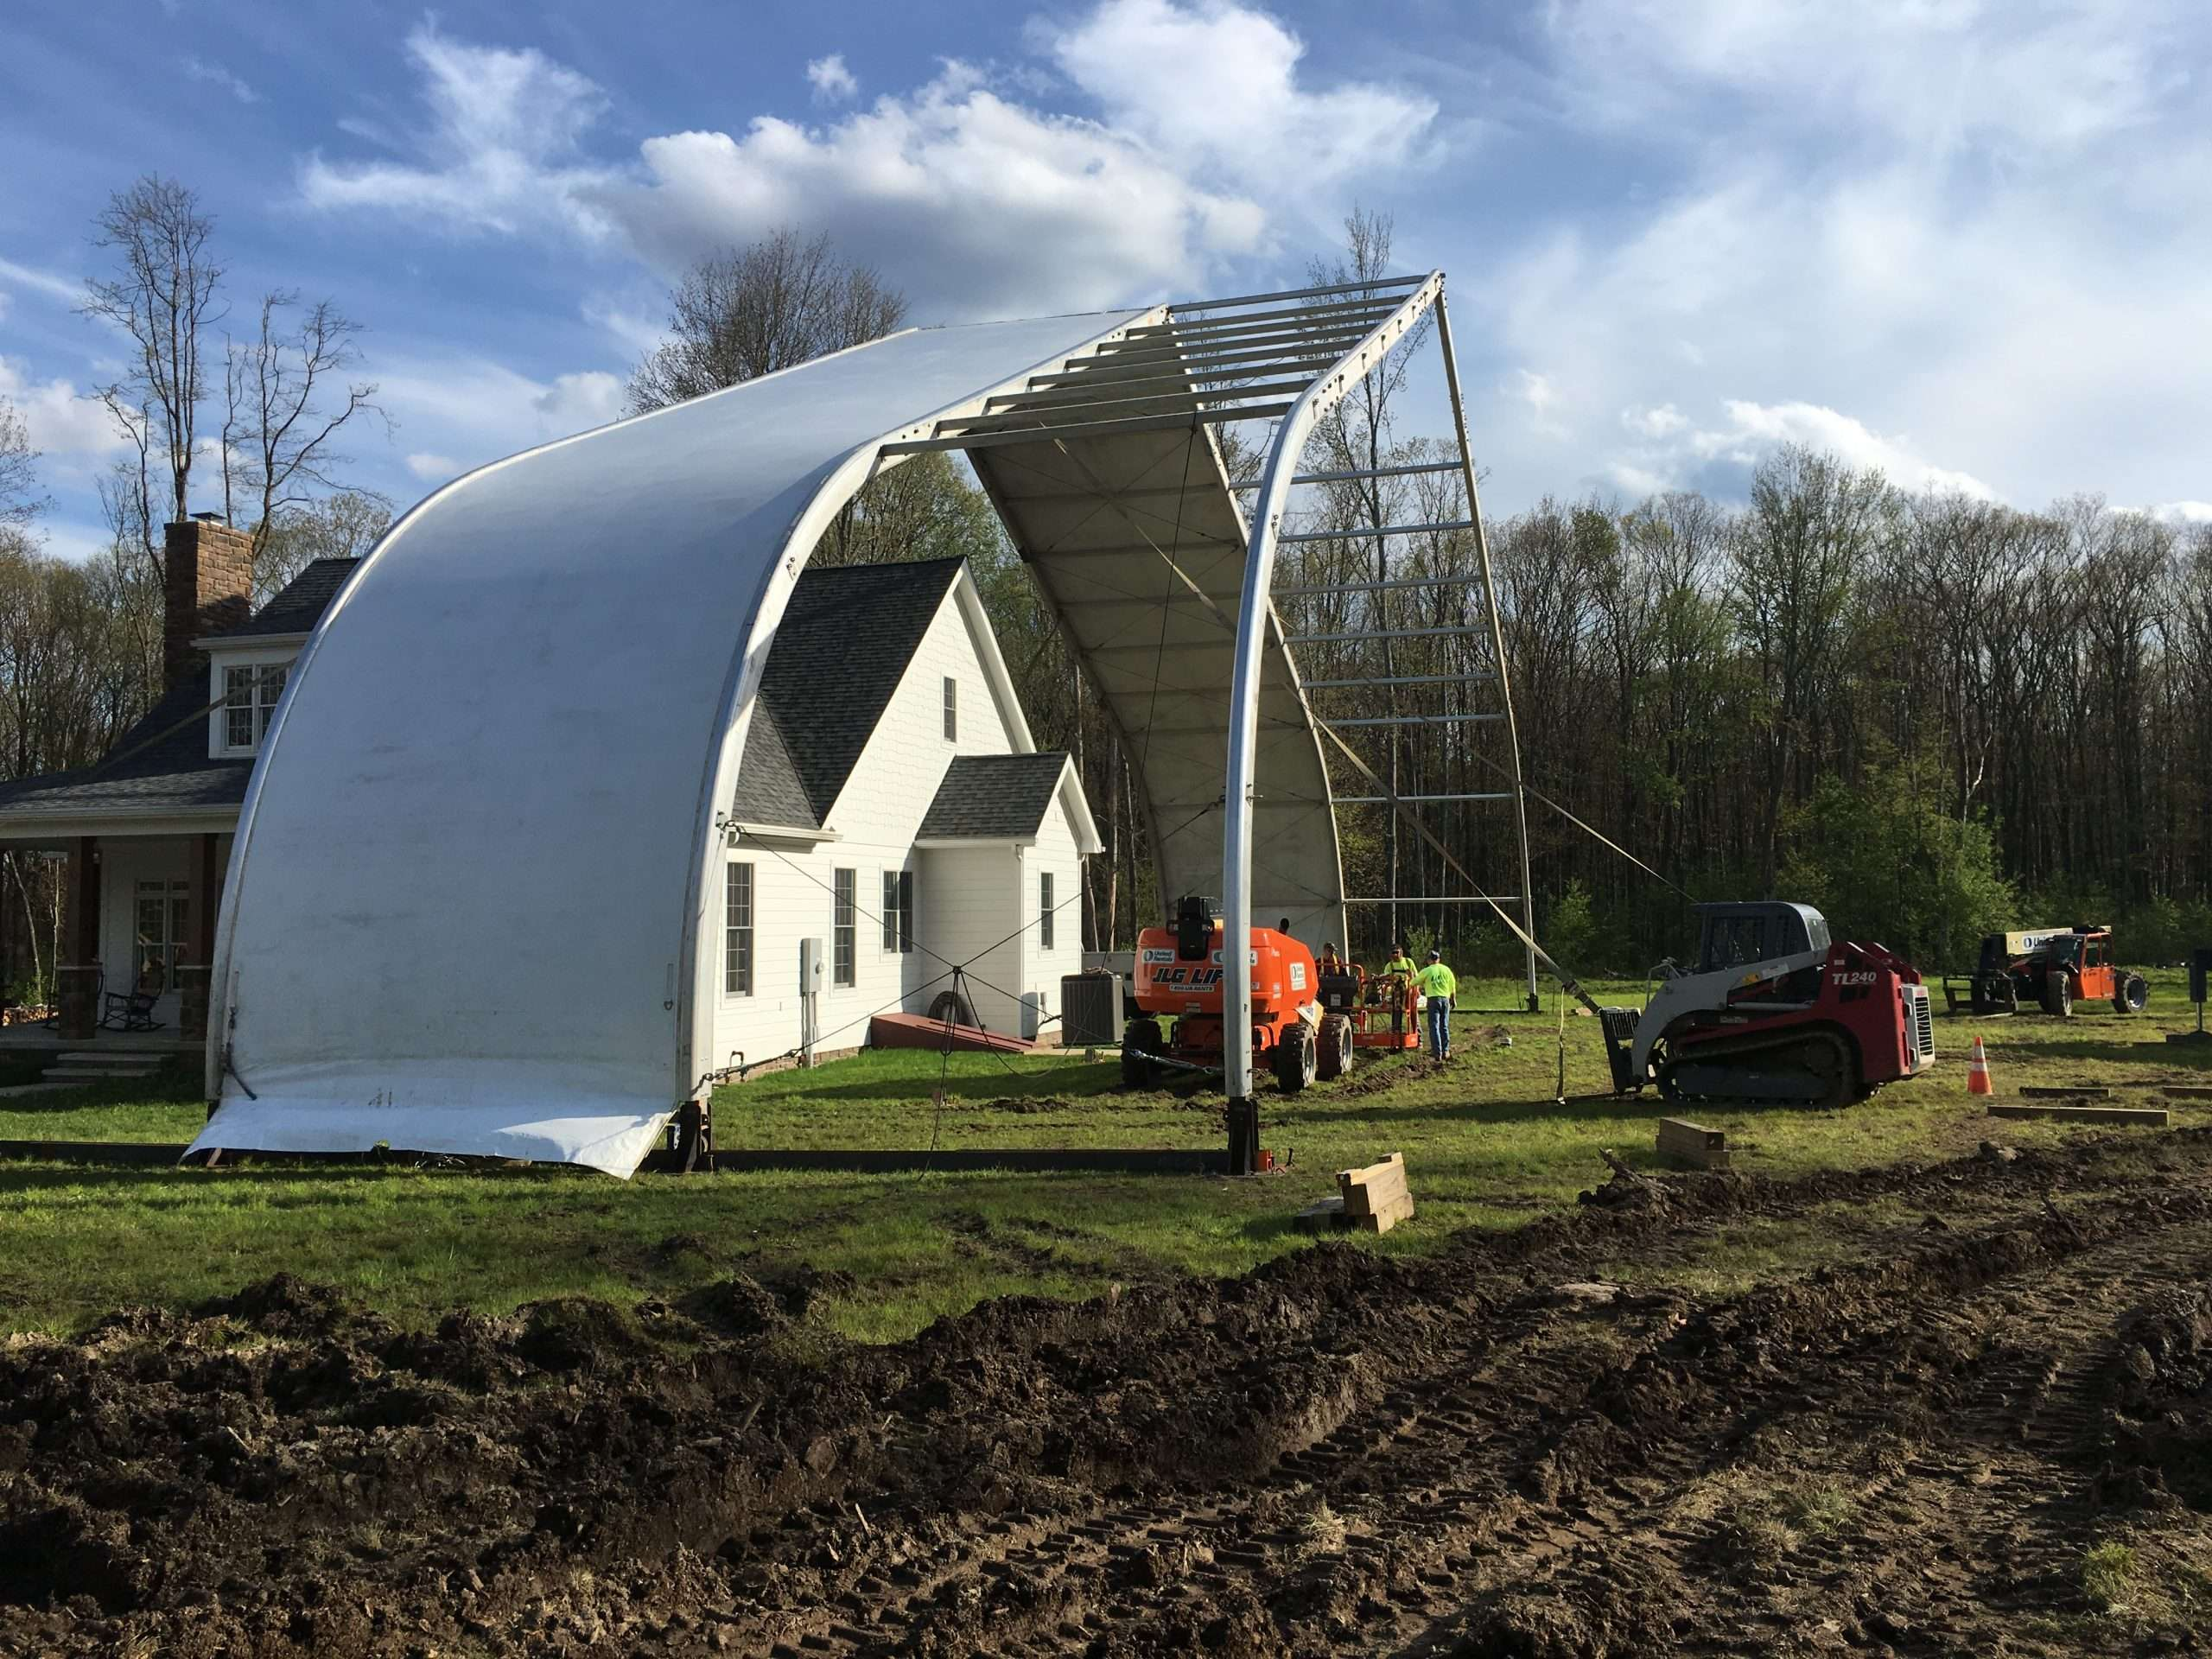 tension fabric and aluminum frame structure over home reconstruction site